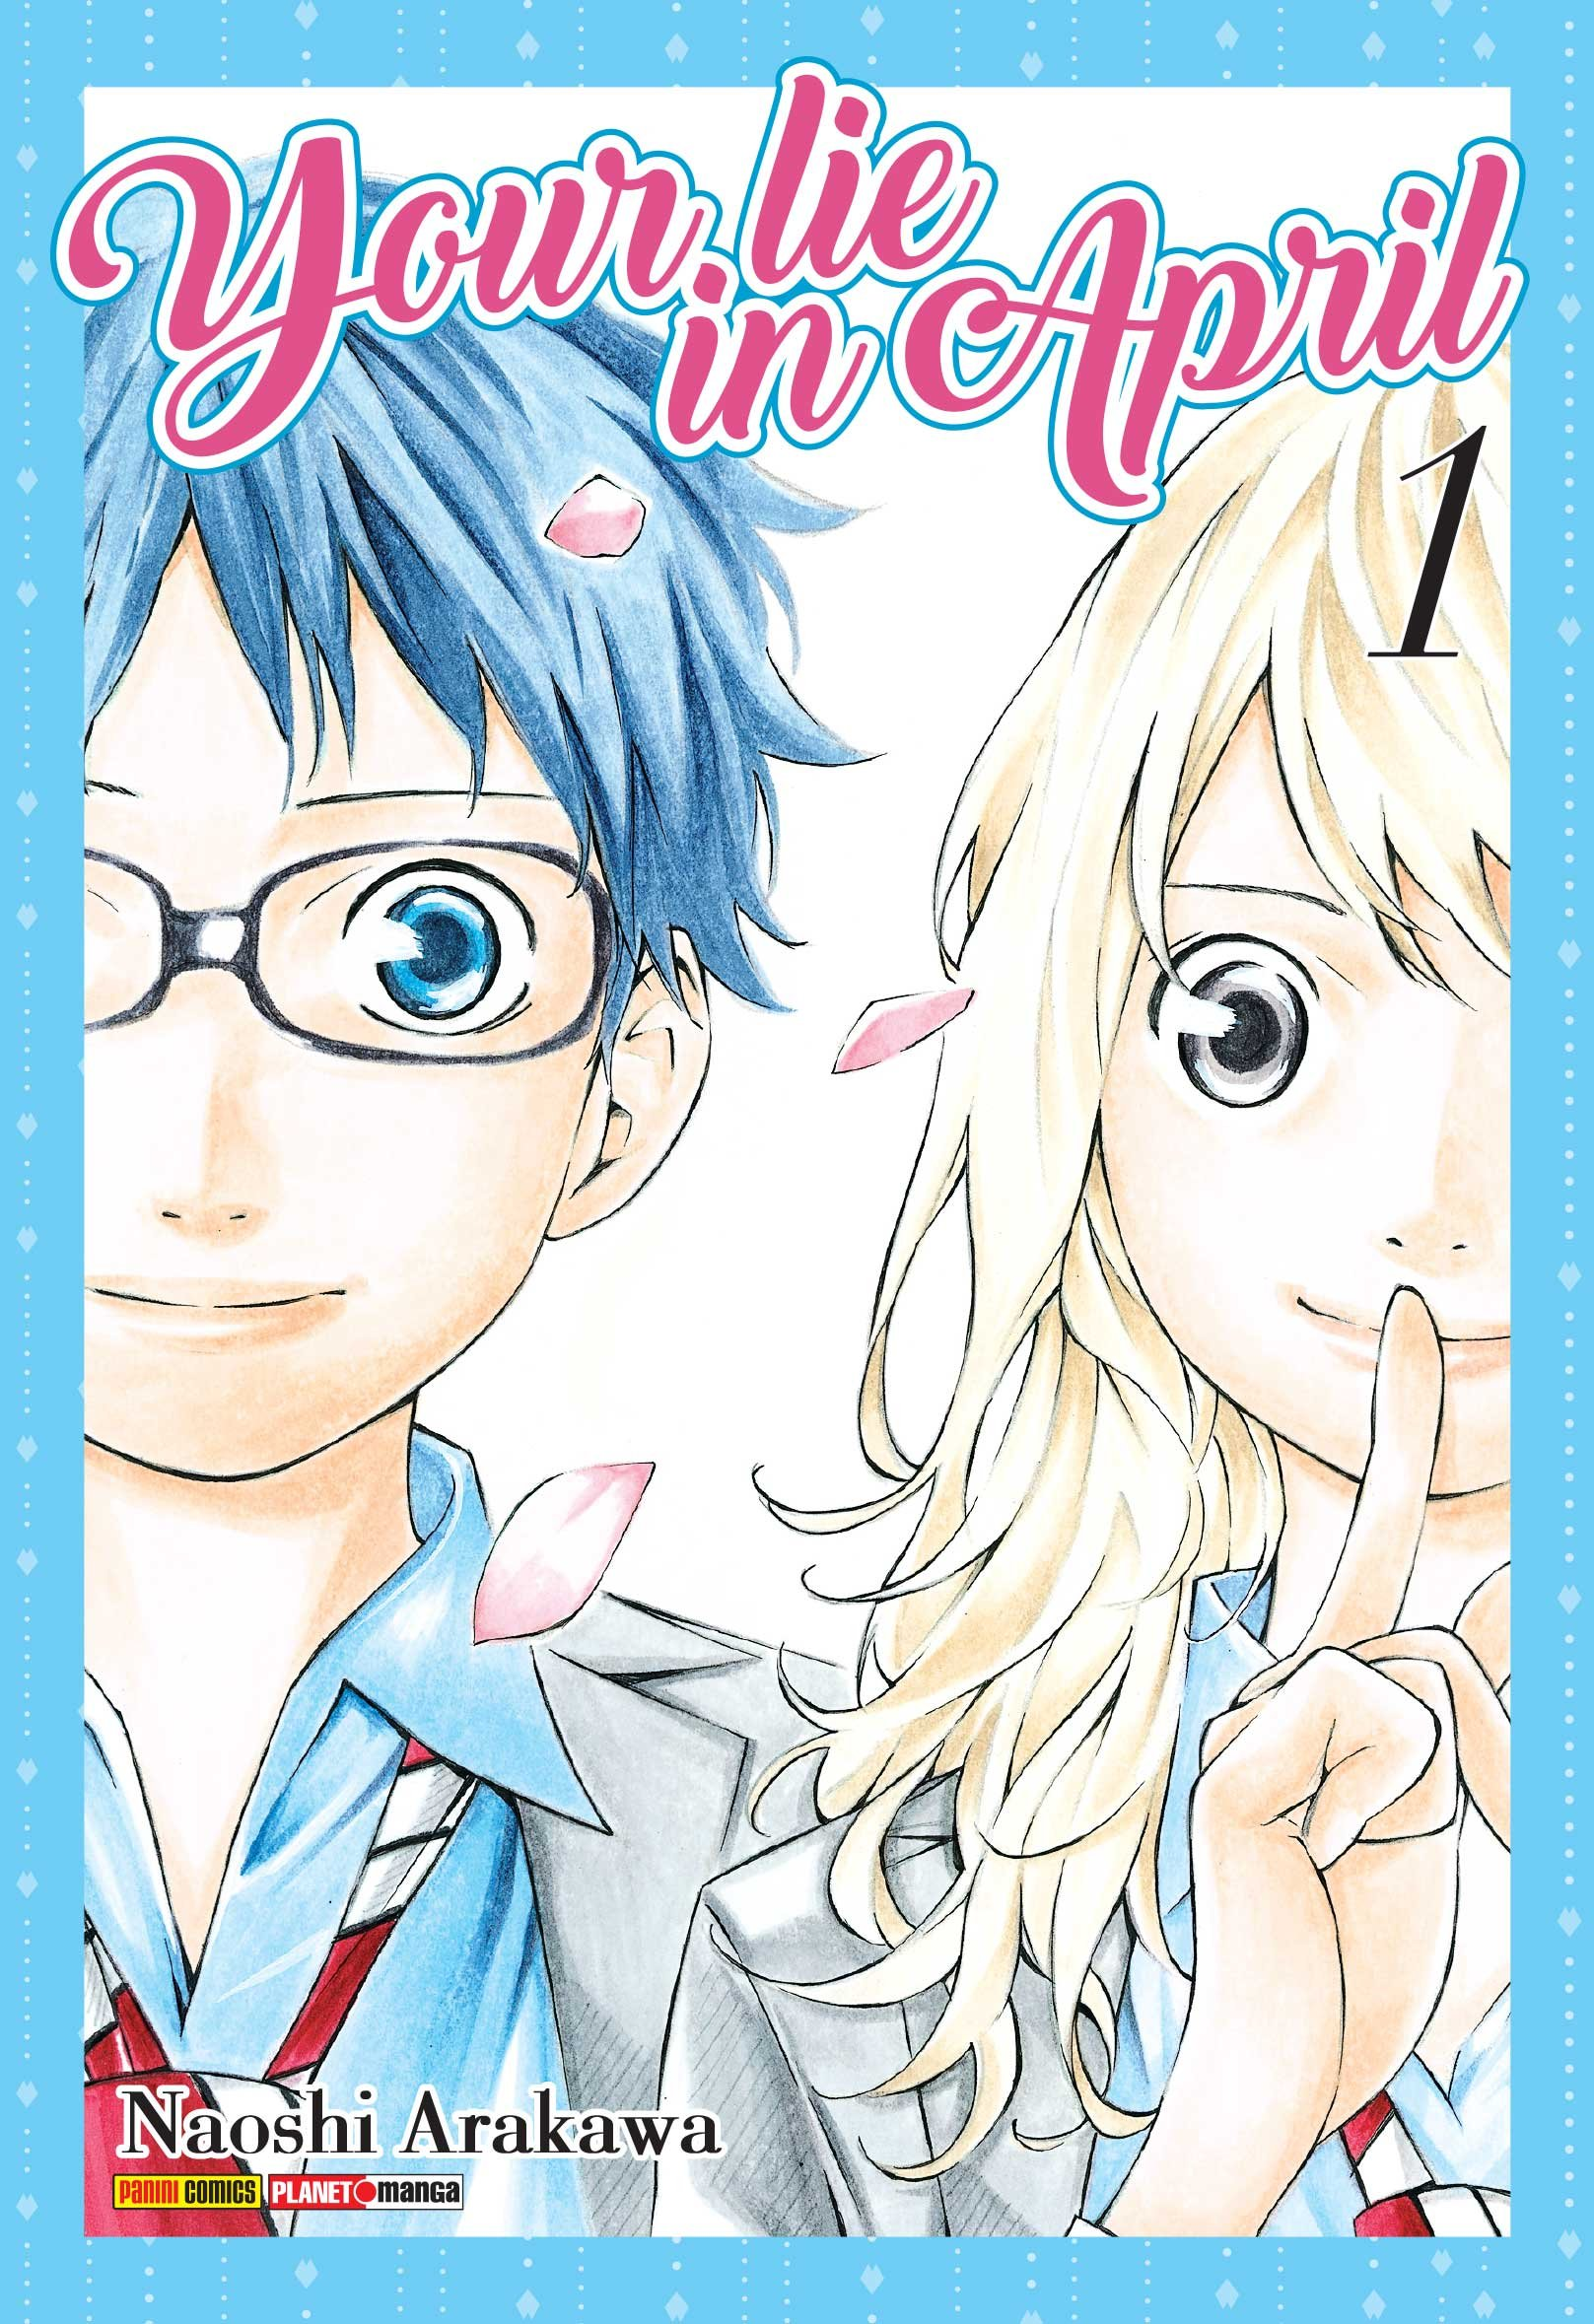 Resenha | Your lie in April #01